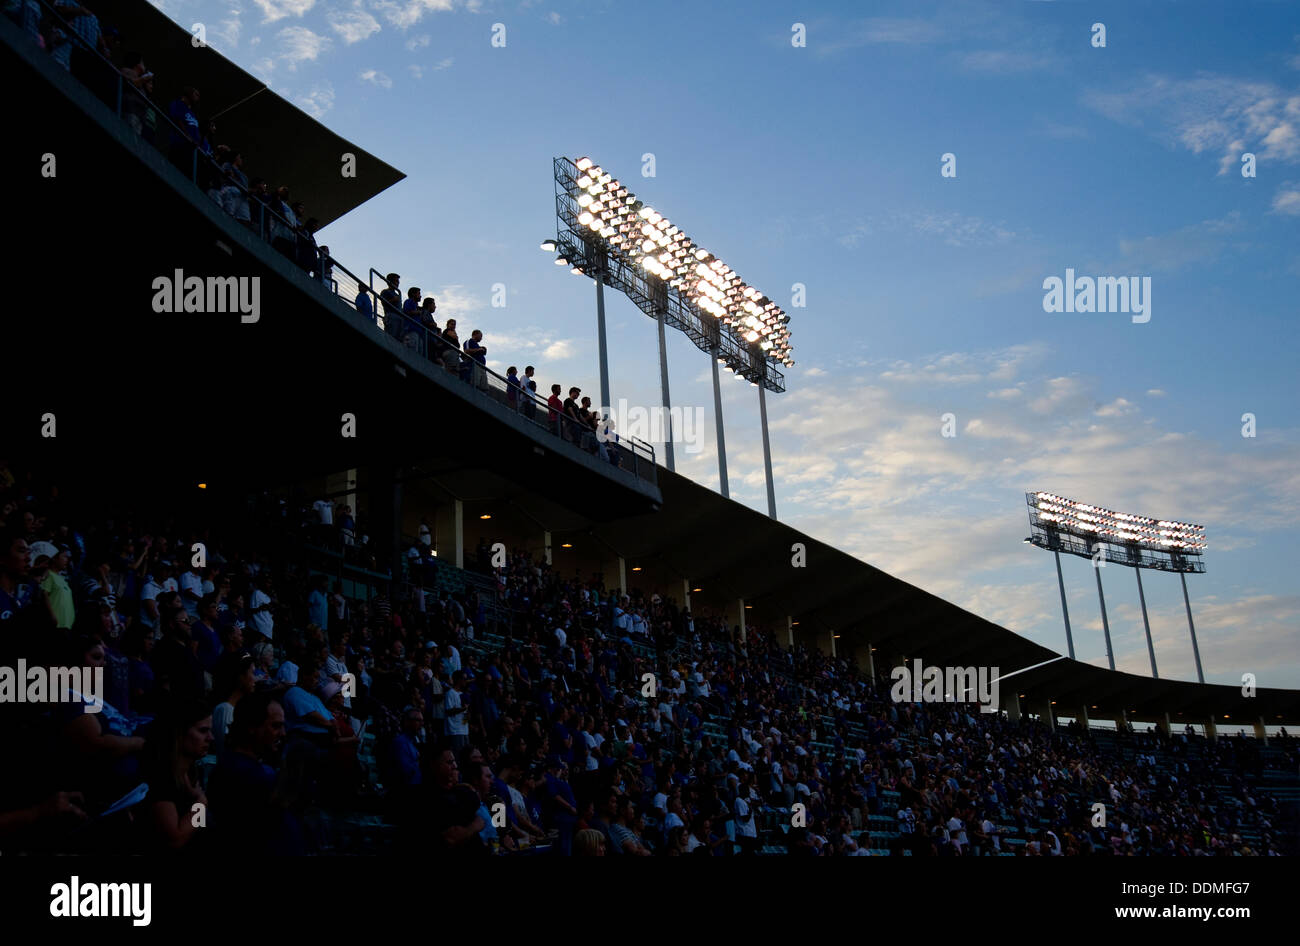 Fans at a sporting event - Stock Image